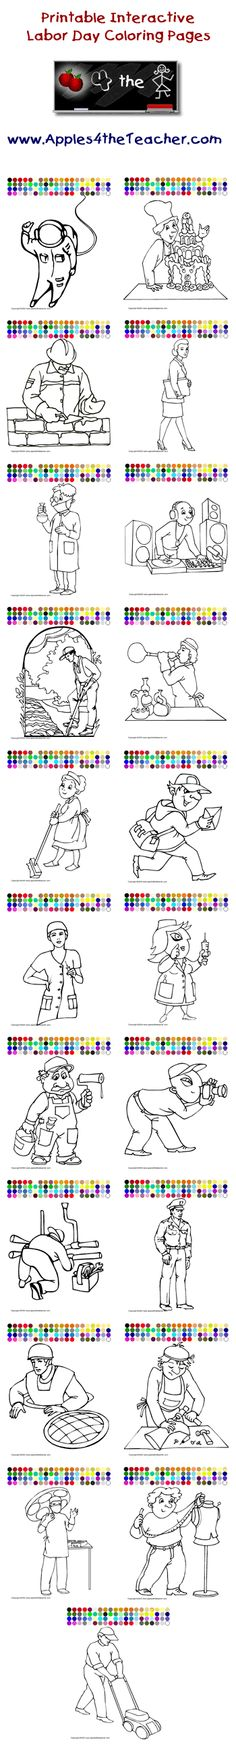 printable interactive labor day coloring pages labor day coloring pages for kids http